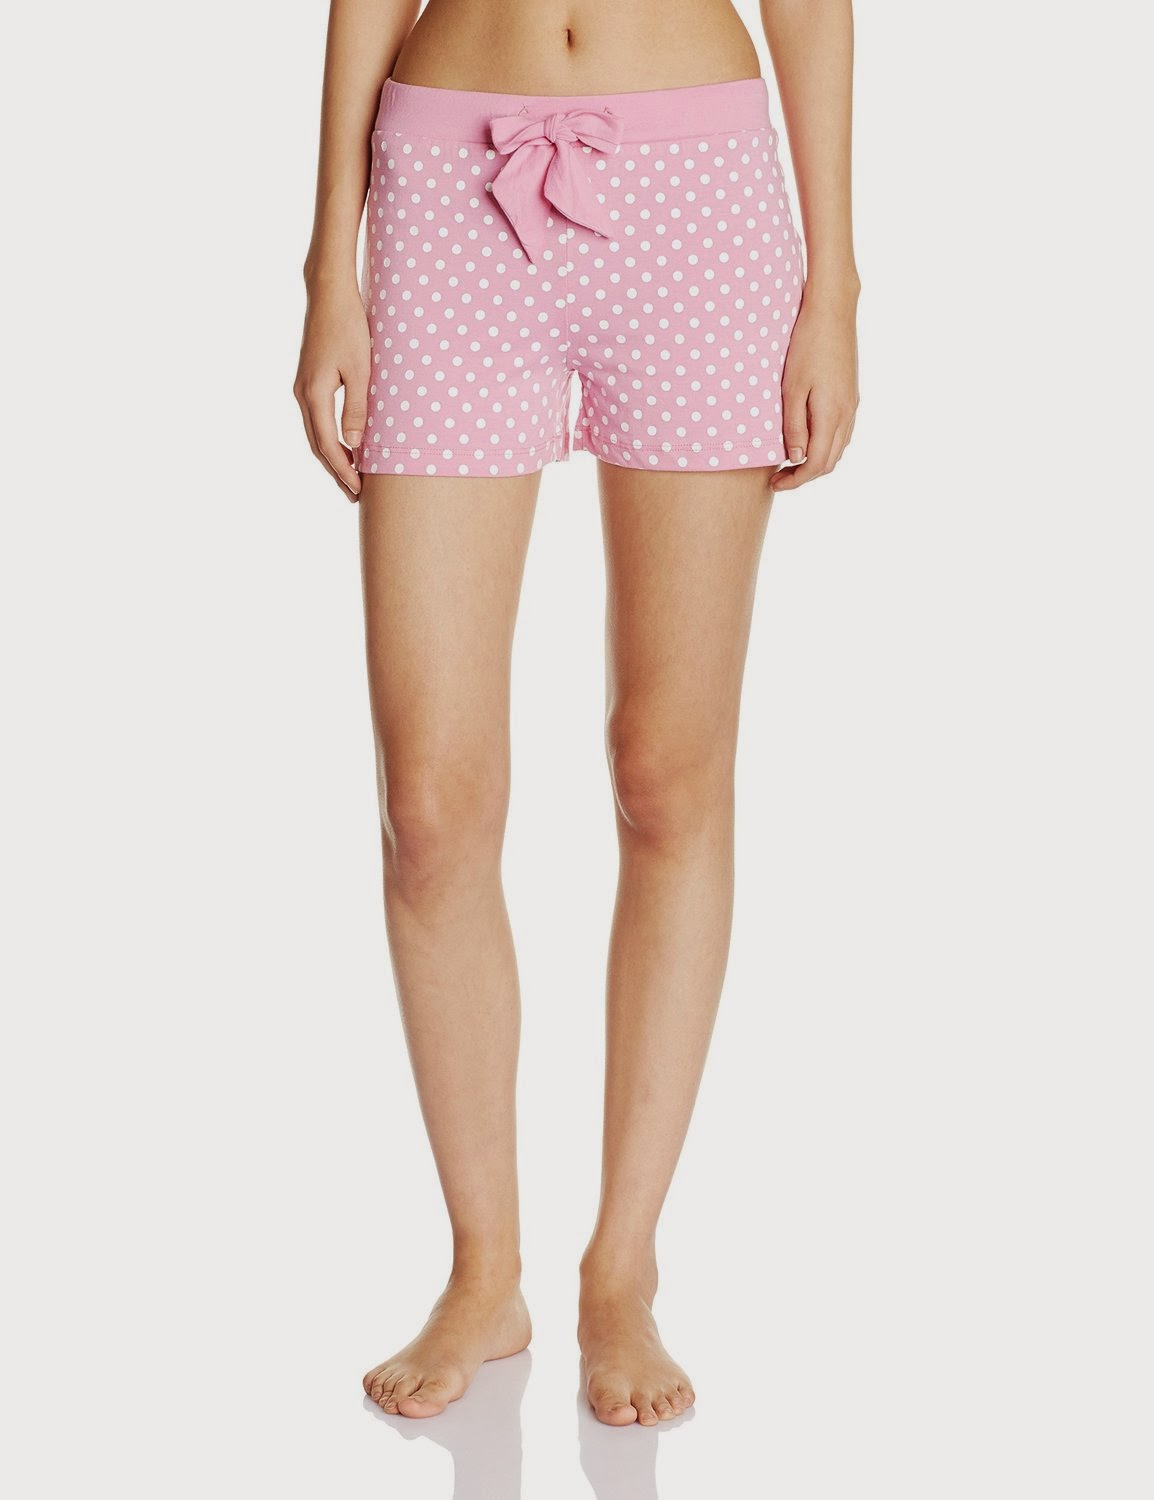 Buy GoBahamas Women's Cotton Boxer Rs. 134 only at Amazon.